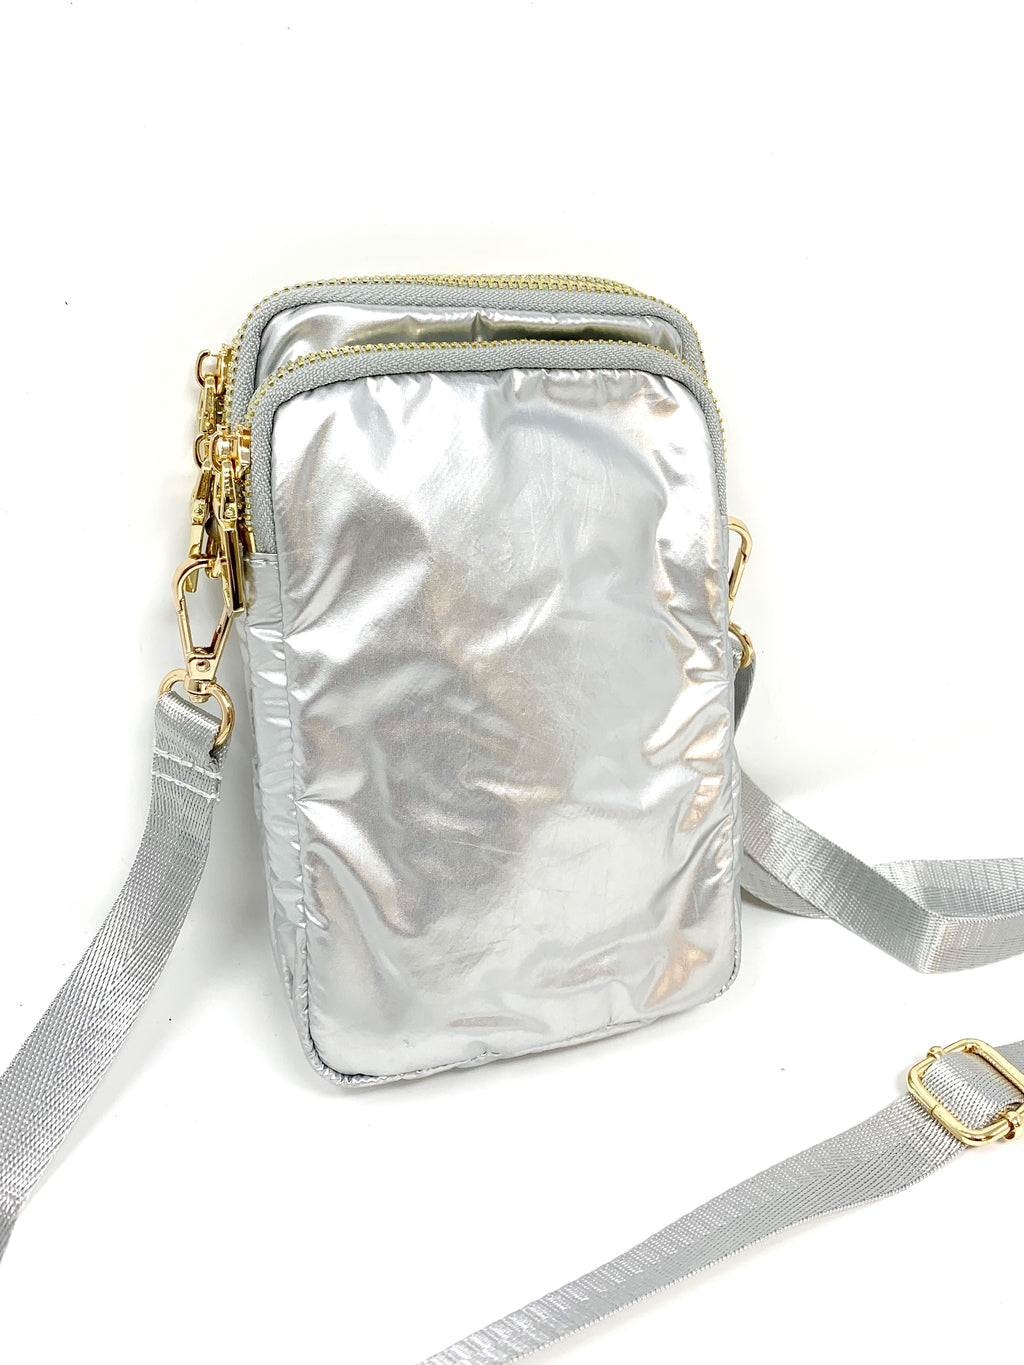 Cell Bag in Silver